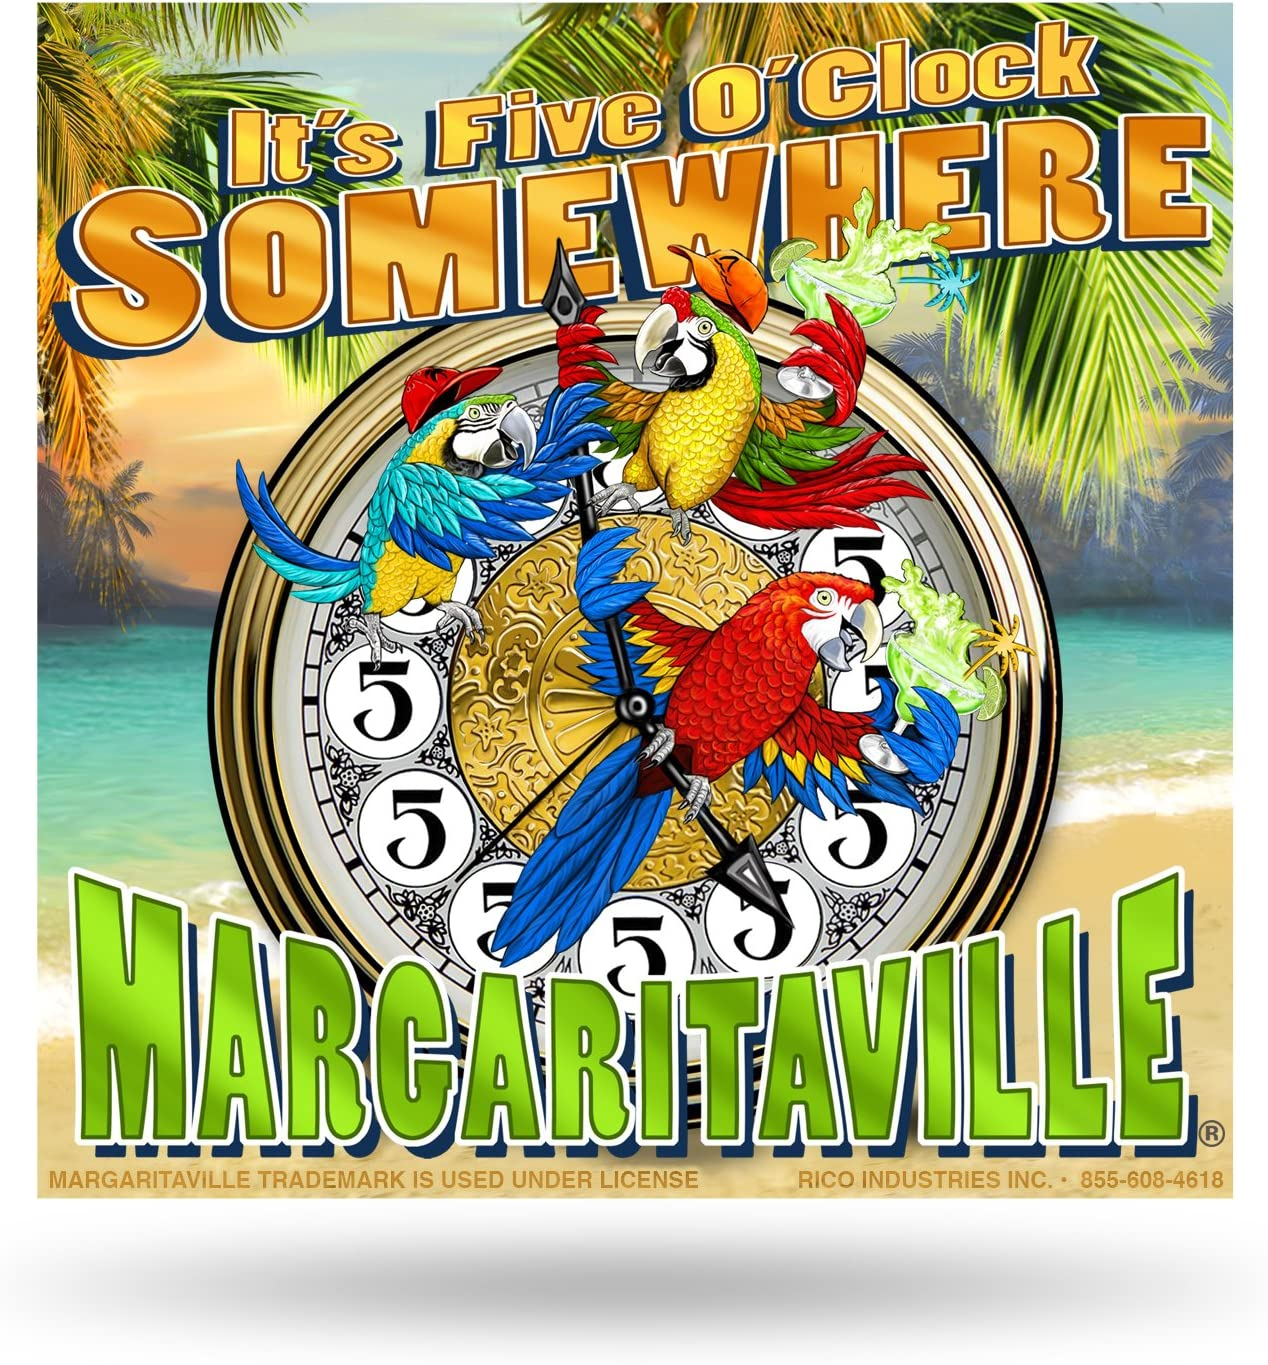 Margaritaville Wood Crate Home Décor Sign, Ideal for Kitchen, Living Room, Office, Garden, Porch, Beach Décor, Parrothead Décor, Measures 4 x 4-inches